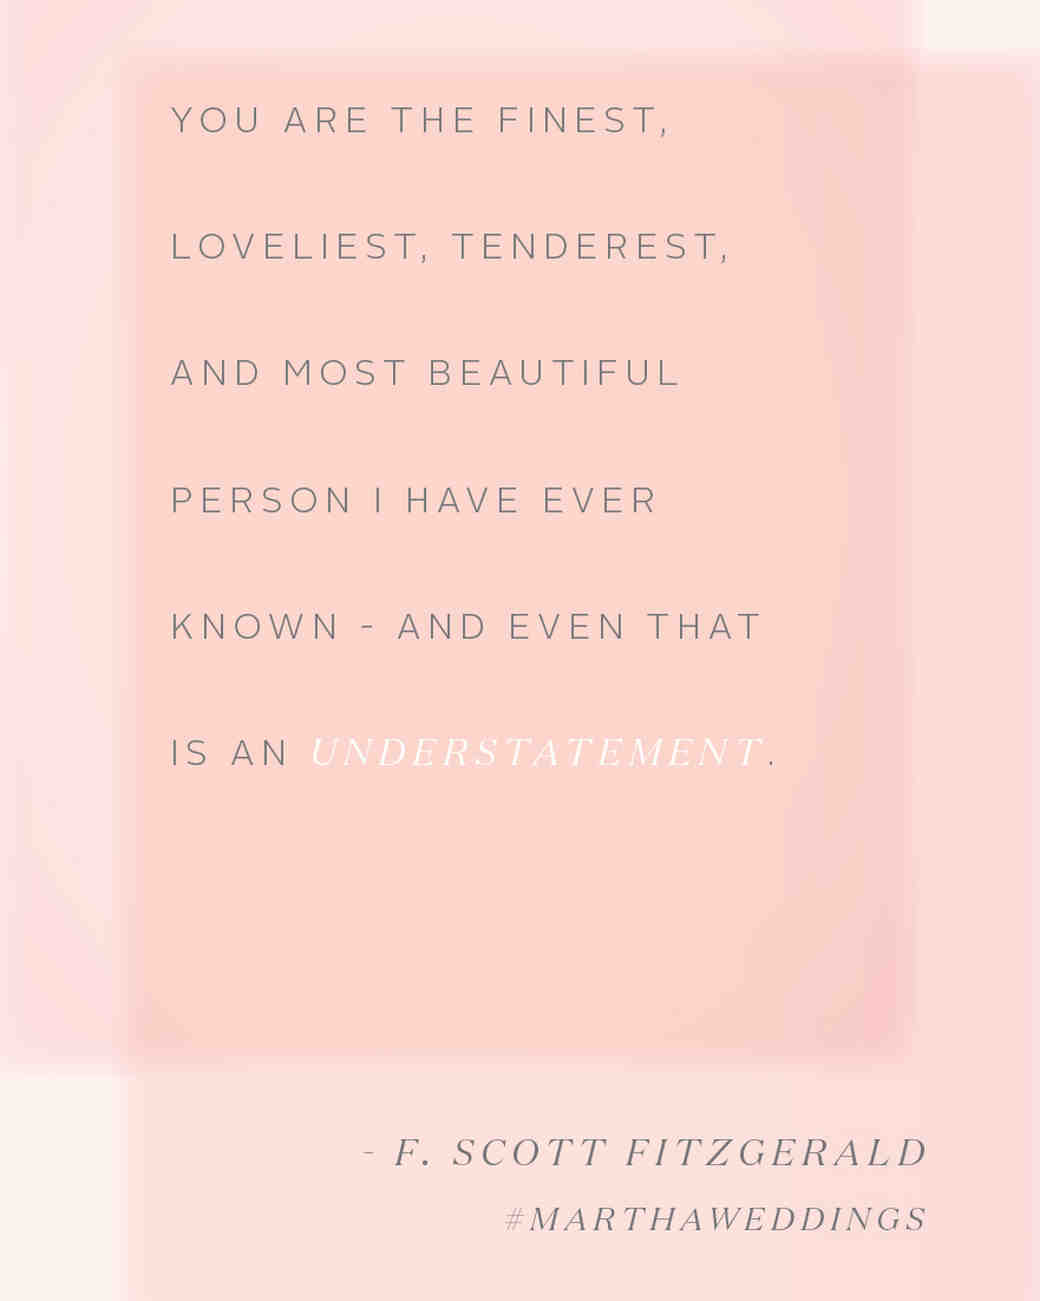 F Scott Fitzgerald Love Quote The 20 Best Love Quotes Of All Time  Martha Stewart Weddings